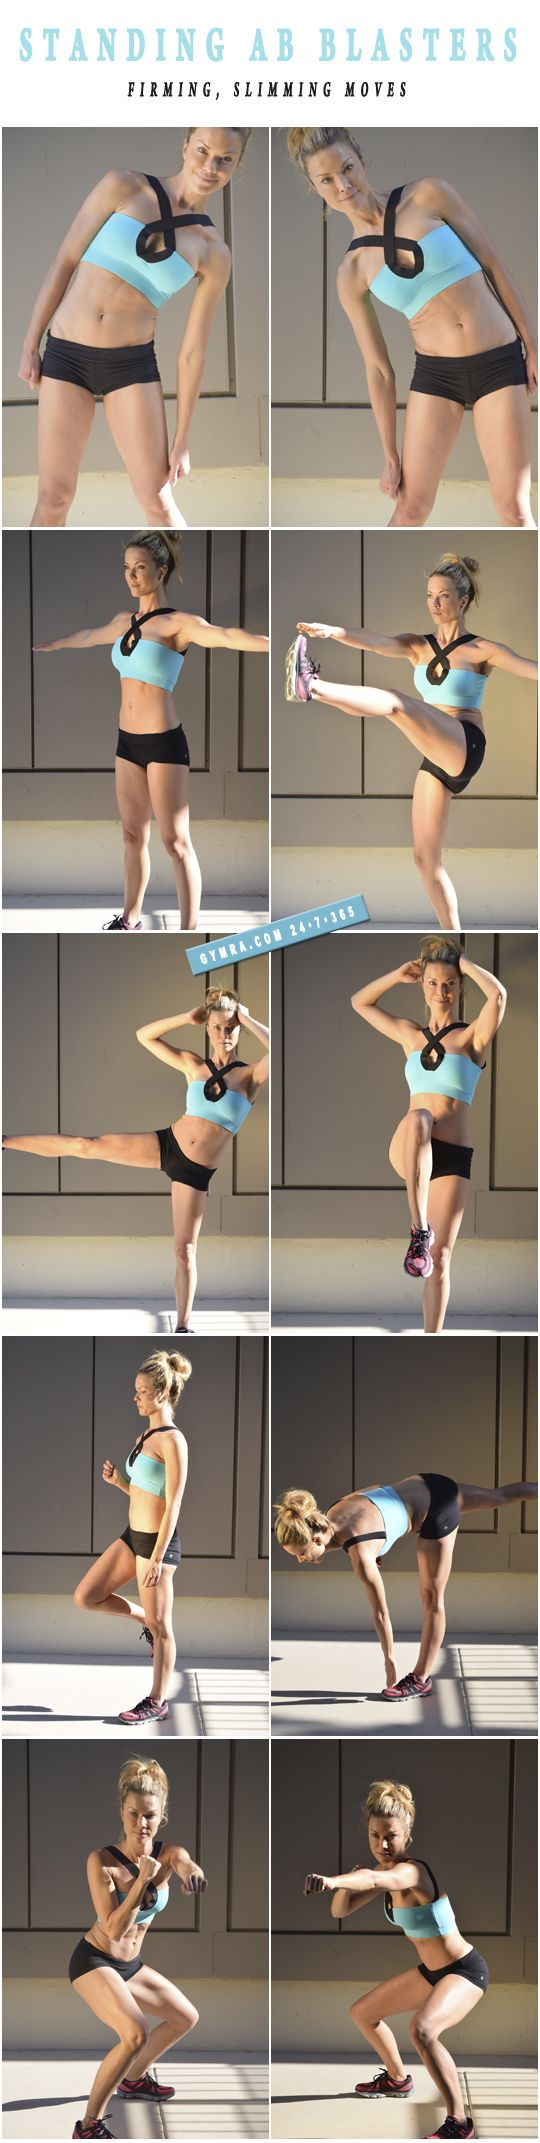 This is so great. I love working my abs from a standing position. Such a great way to work the core without pulling on your neck.